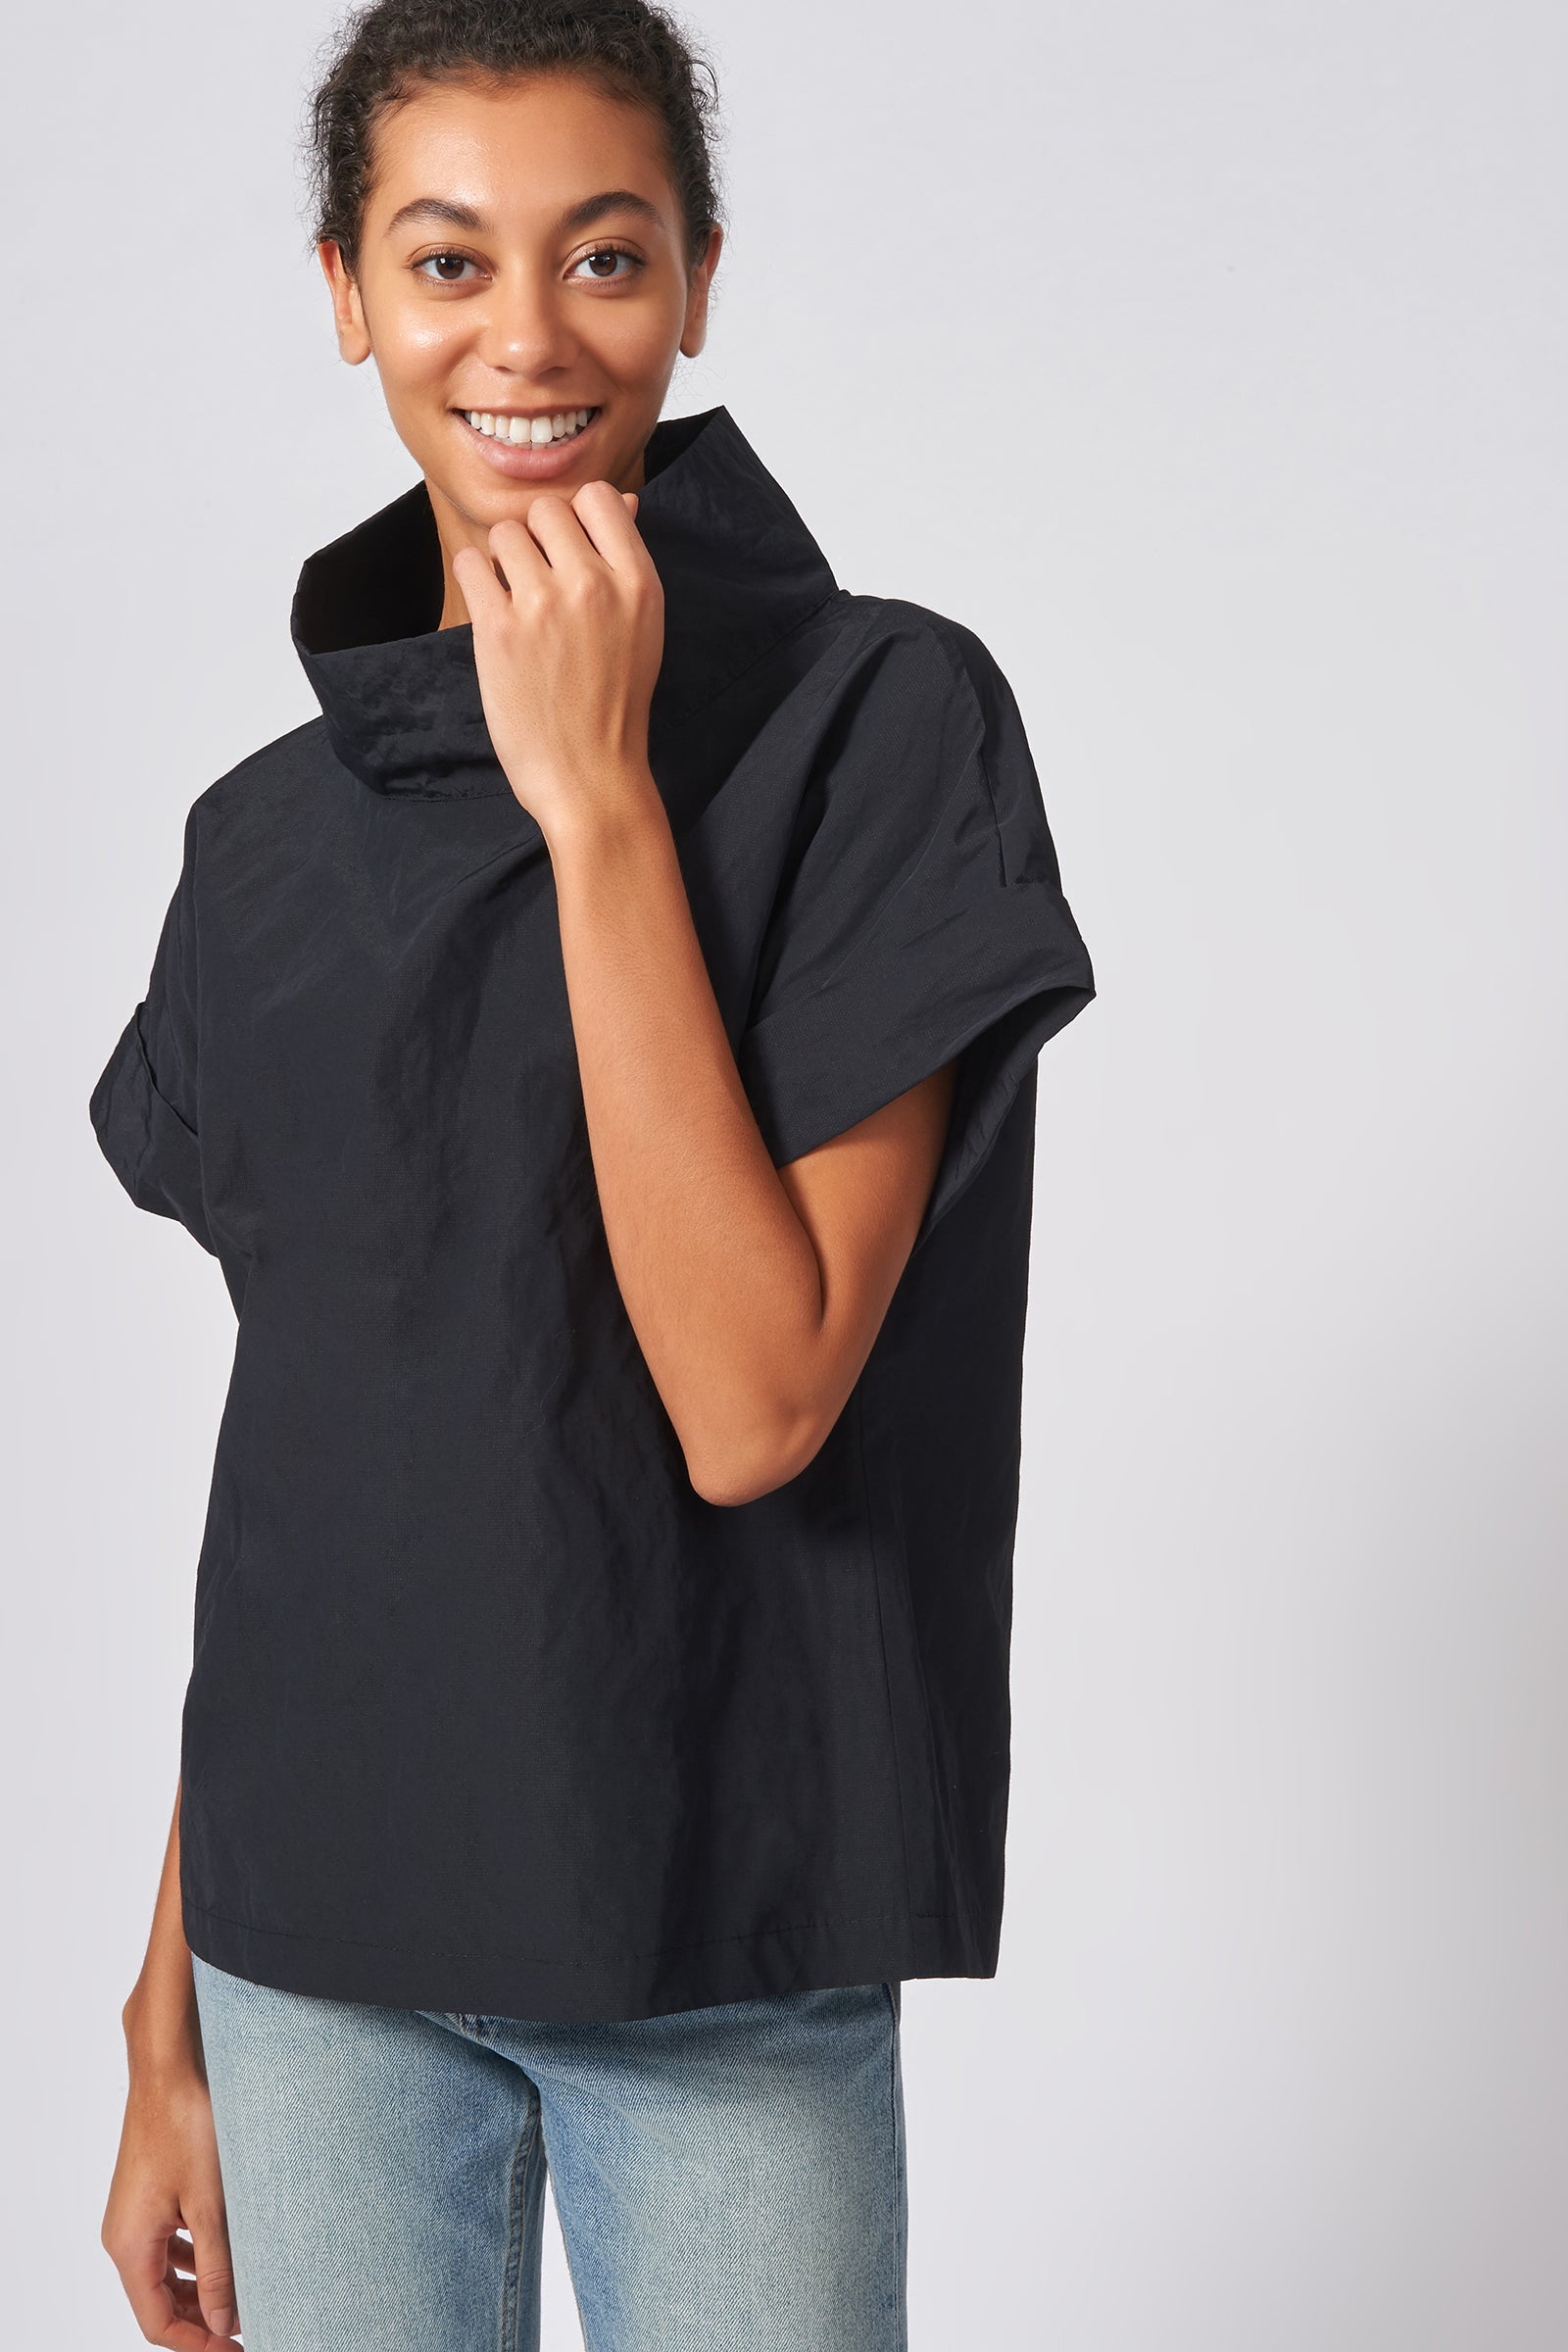 Kal Rieman Cuffed Kimono Tee in Black Cotton Nylon on Model Front View